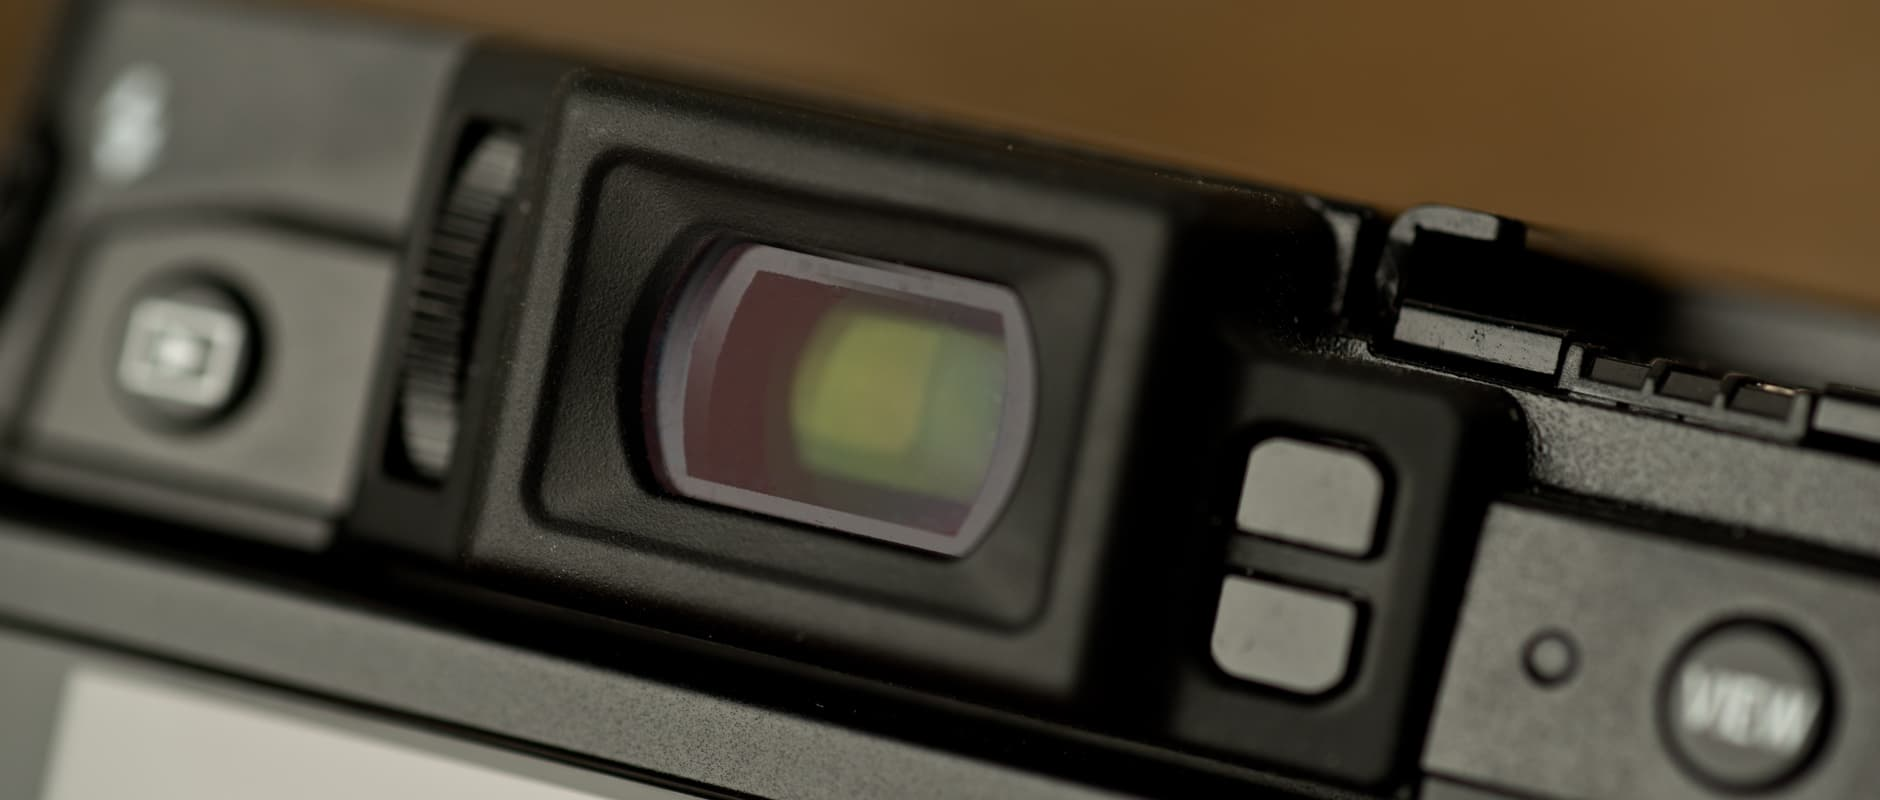 A photo of the Fujifilm X30's electronic viewfinder.